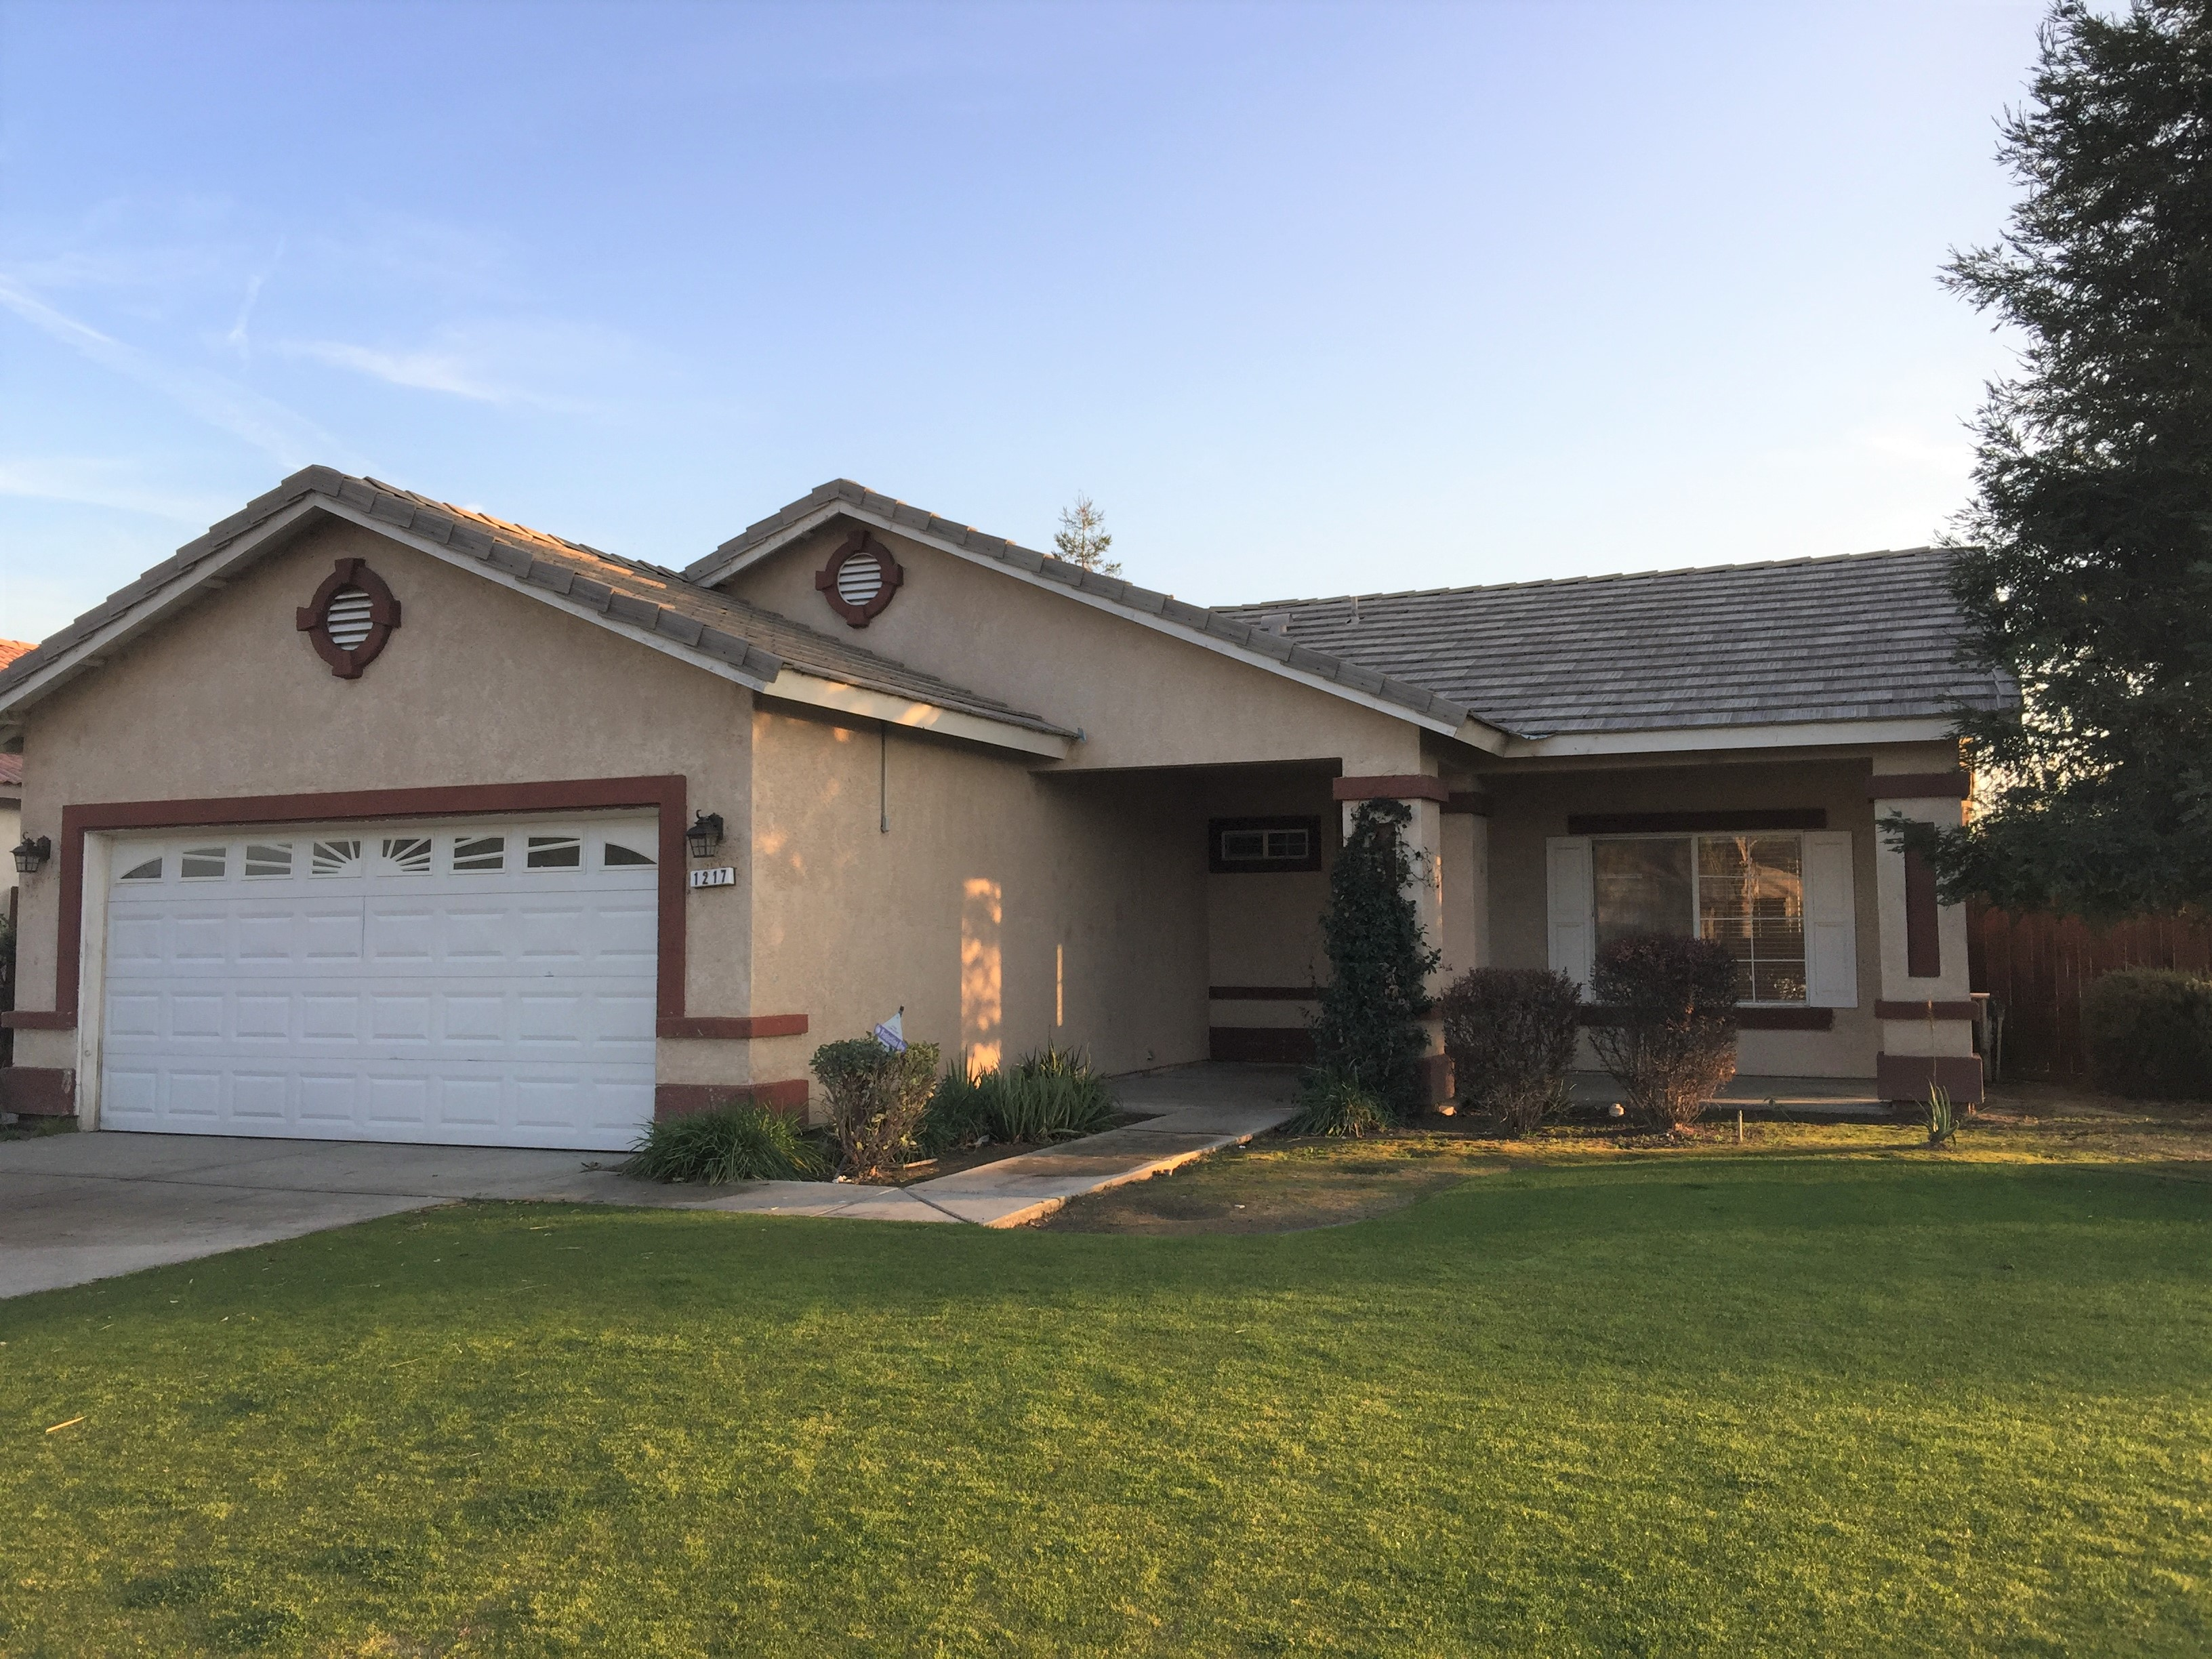 1300 1217 Bachelor St Bakersfield Ca 93307 Home Has